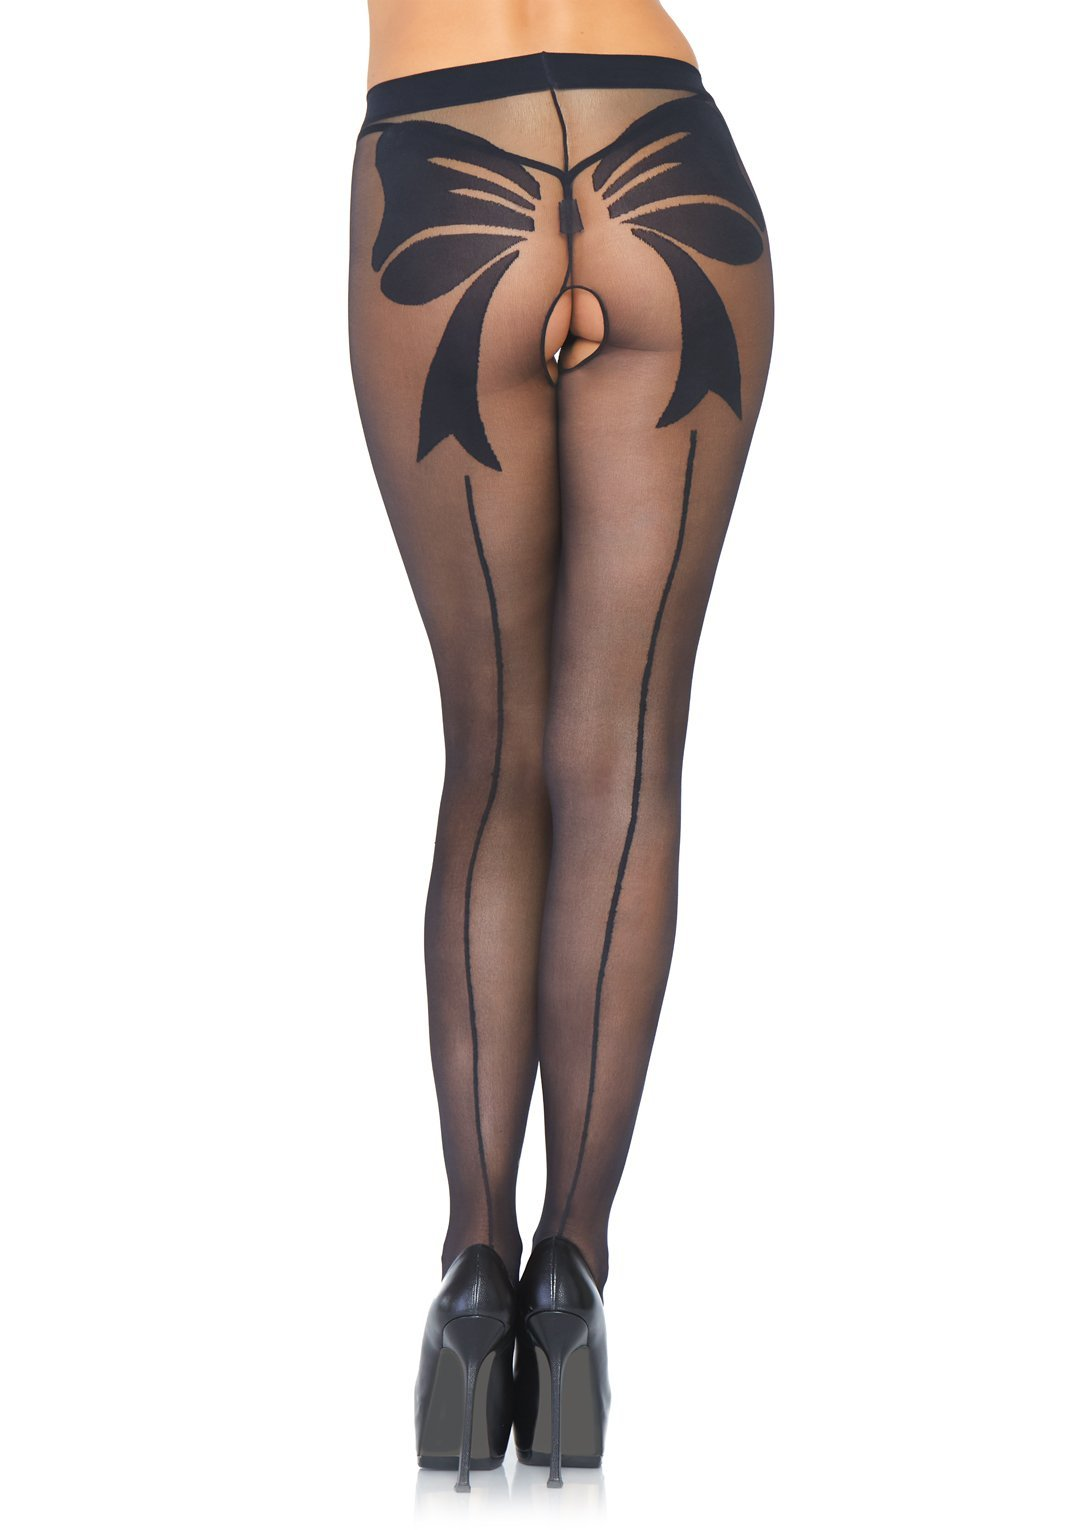 Big Bow Backseam Pantyhose Tights Edmonton